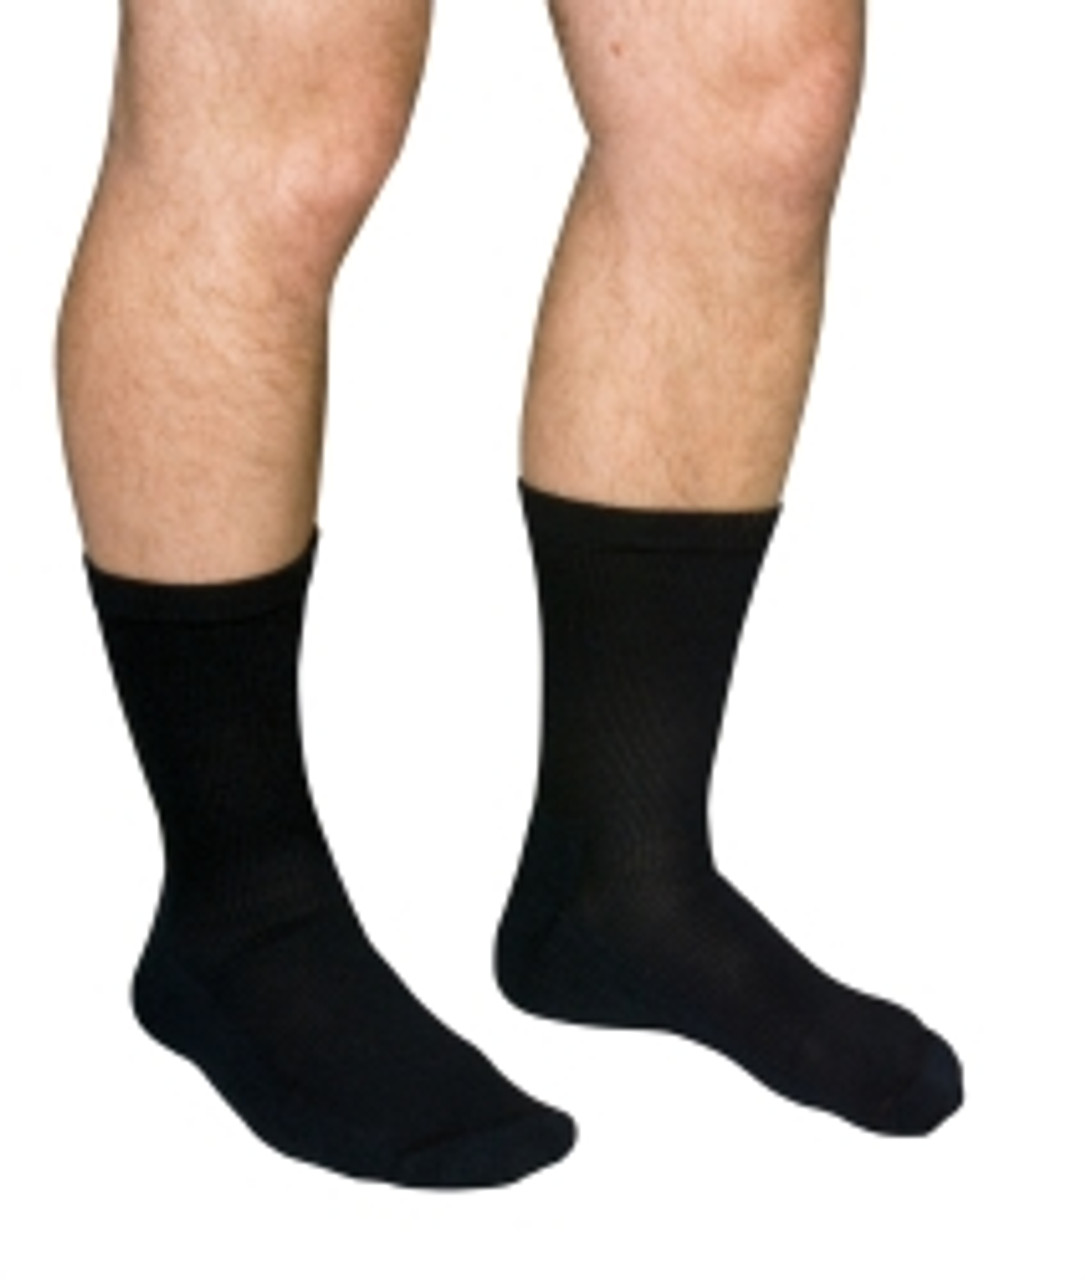 Home Medical Products Diabetic Compression Socks